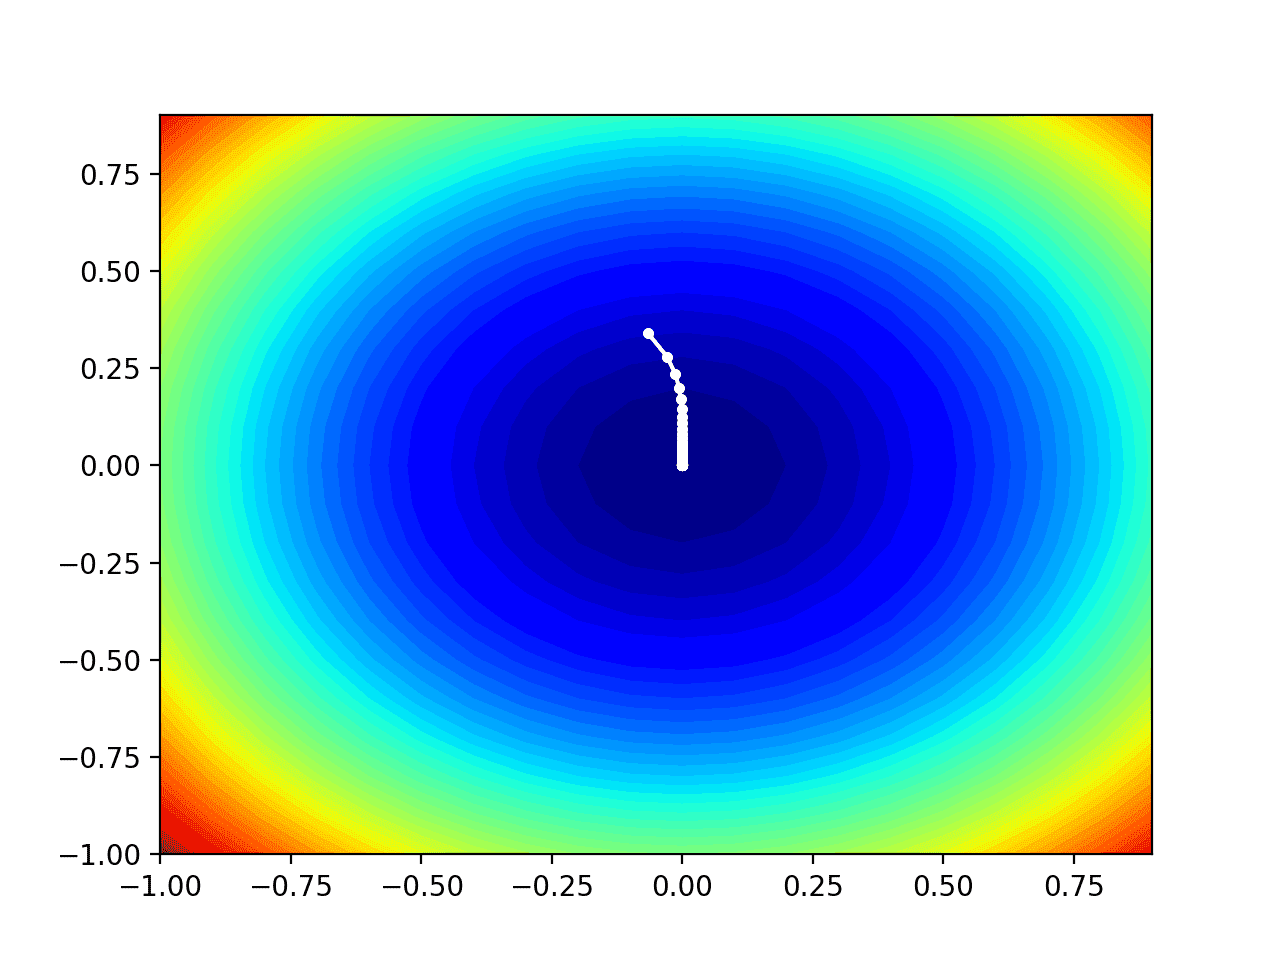 Contour Plot of the Test Objective Function With RMSProp Search Results Shown